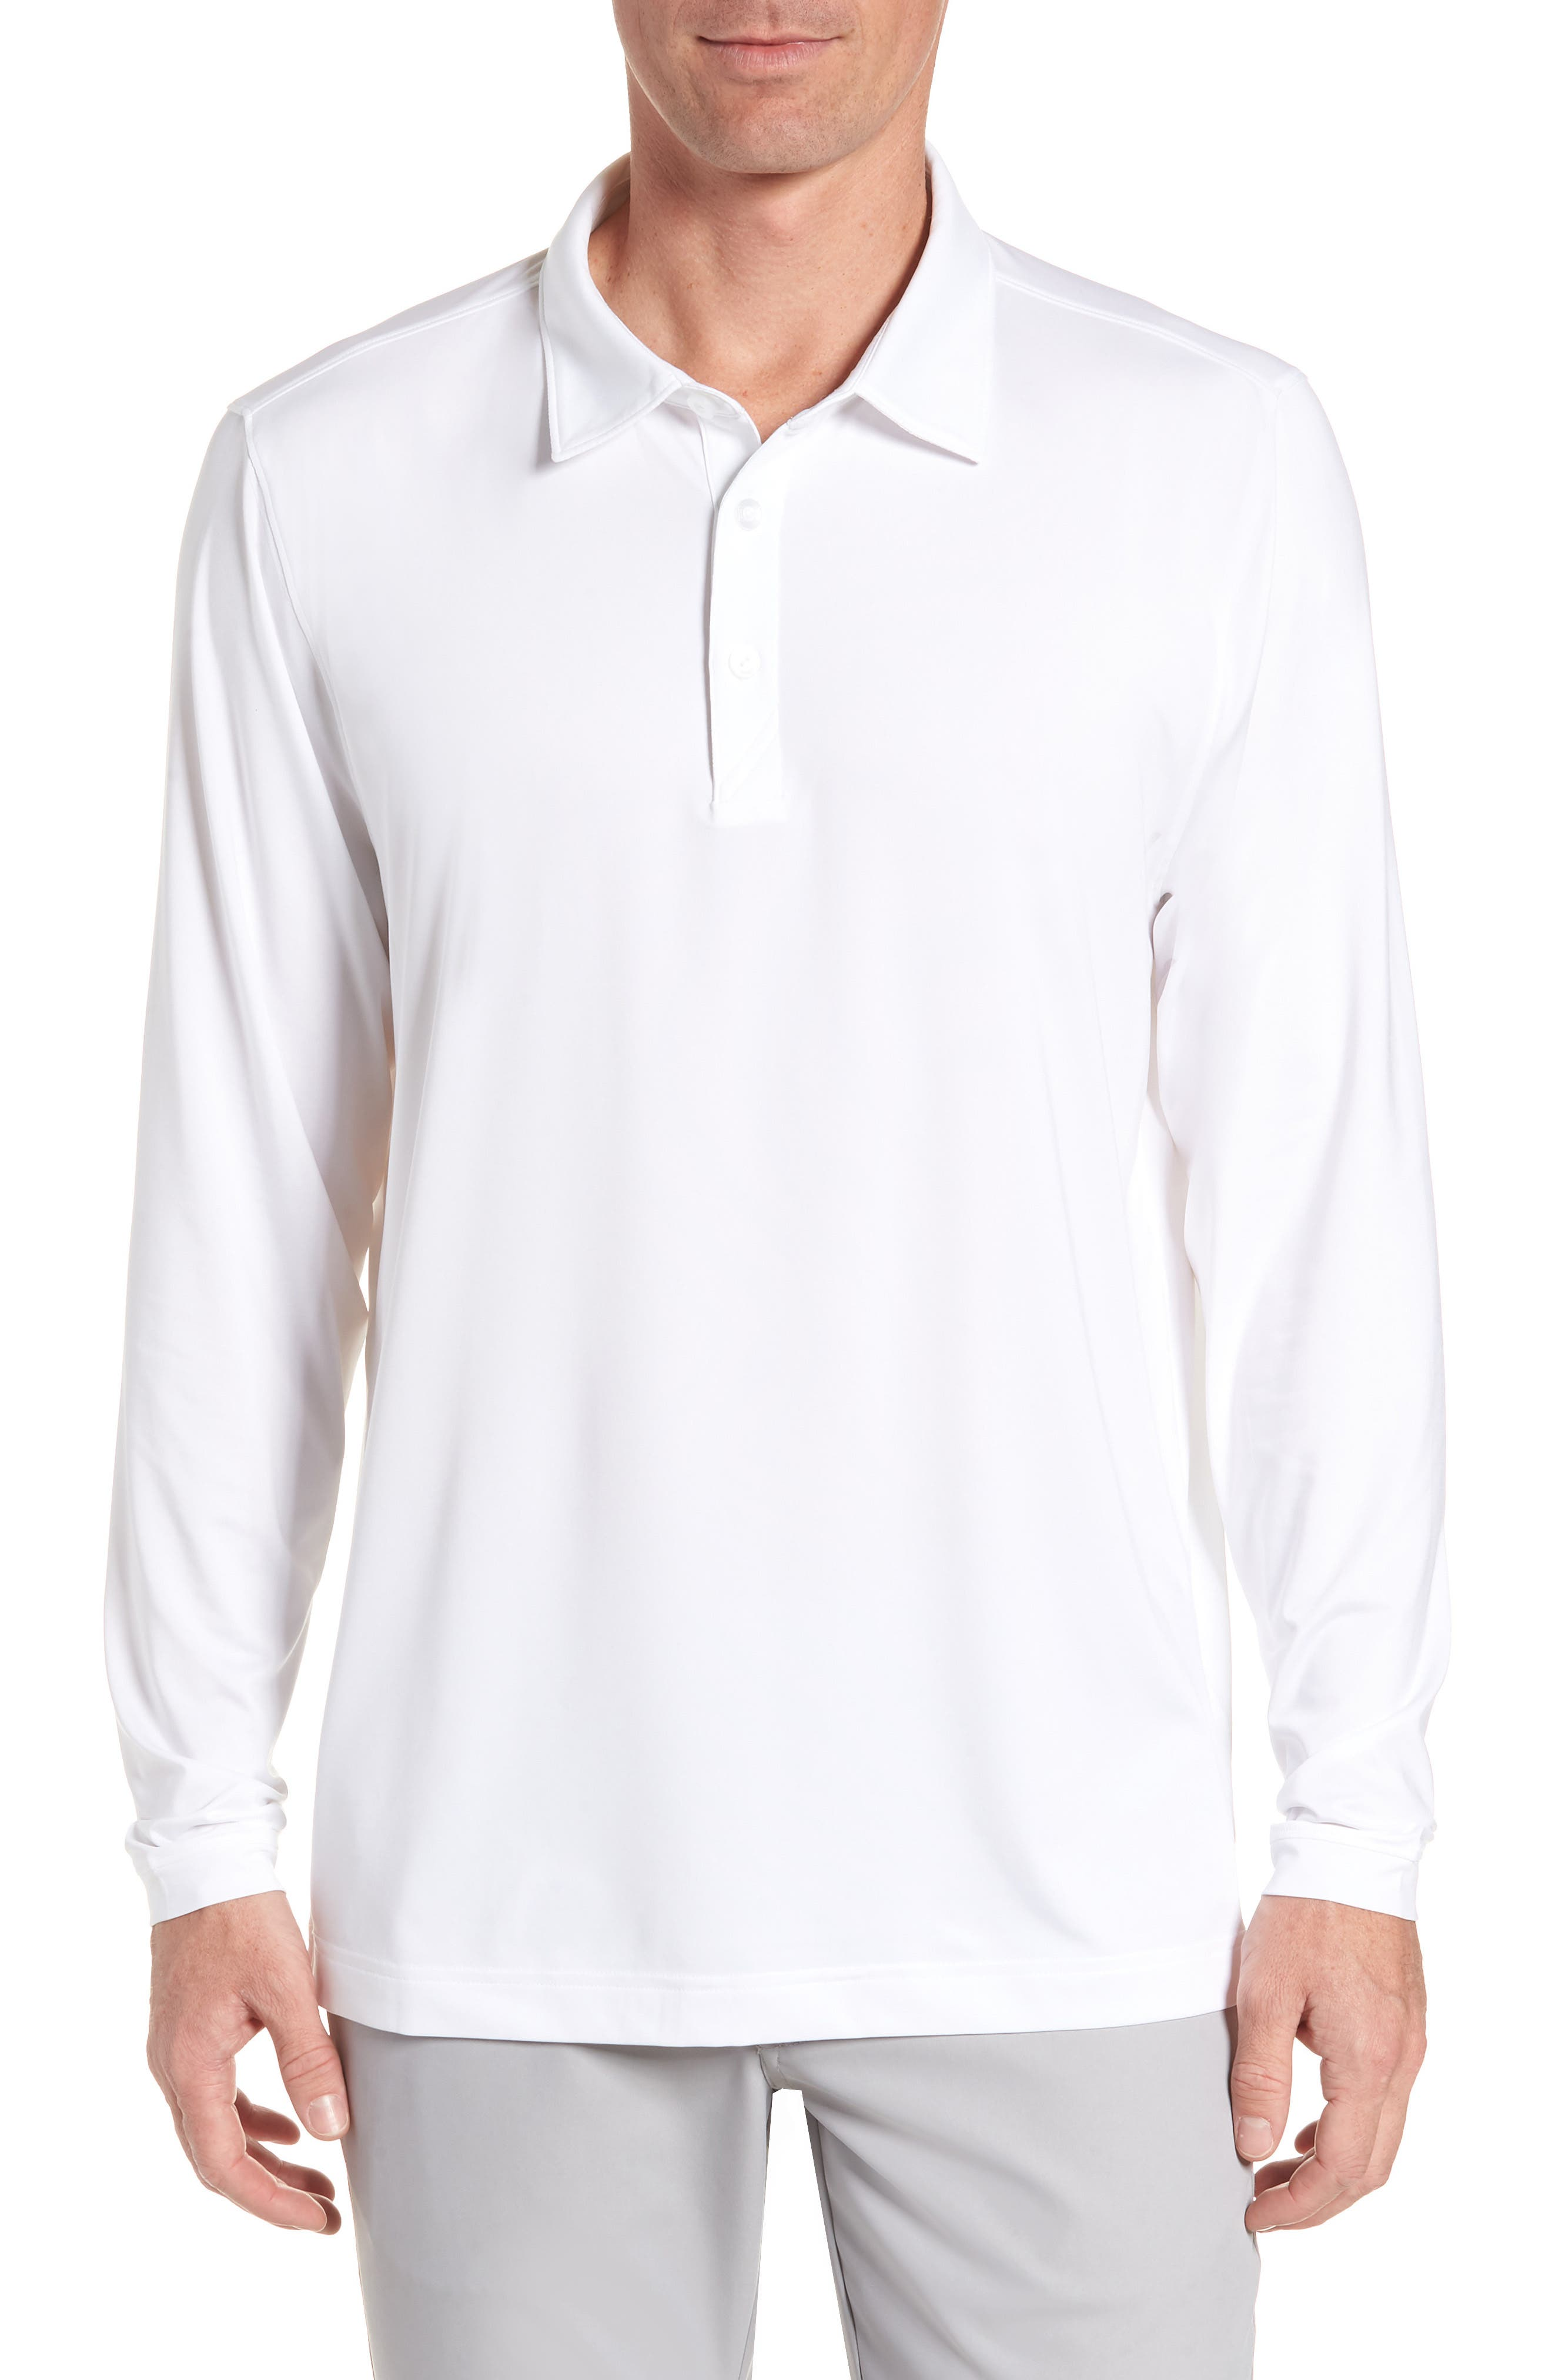 CUTTER & BUCK Belmont Long Sleeve Solid Polo, Main, color, 100